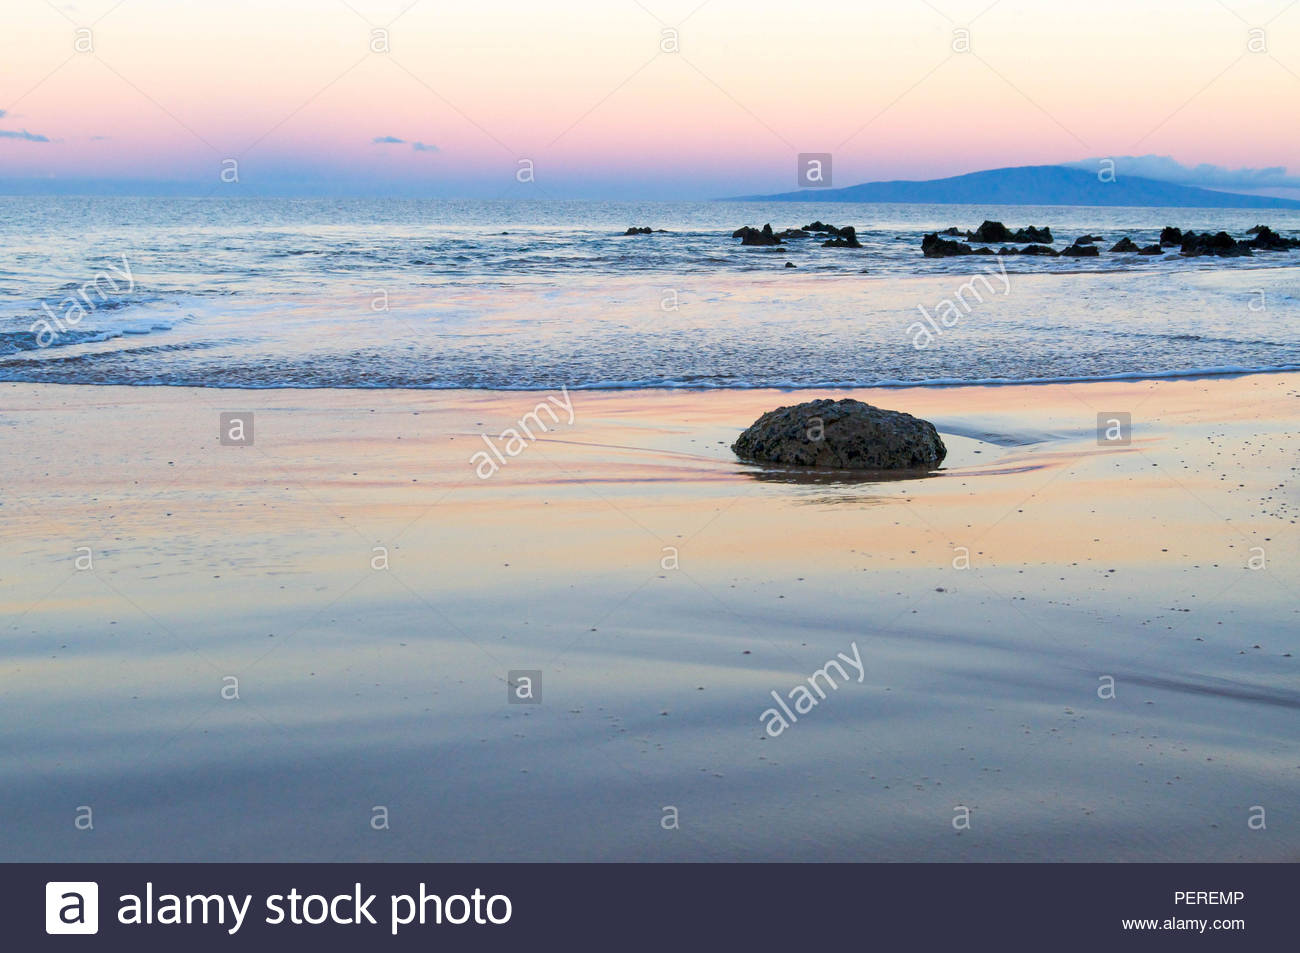 Calm Waters on a Maui Beach at Sunset - Stock Image